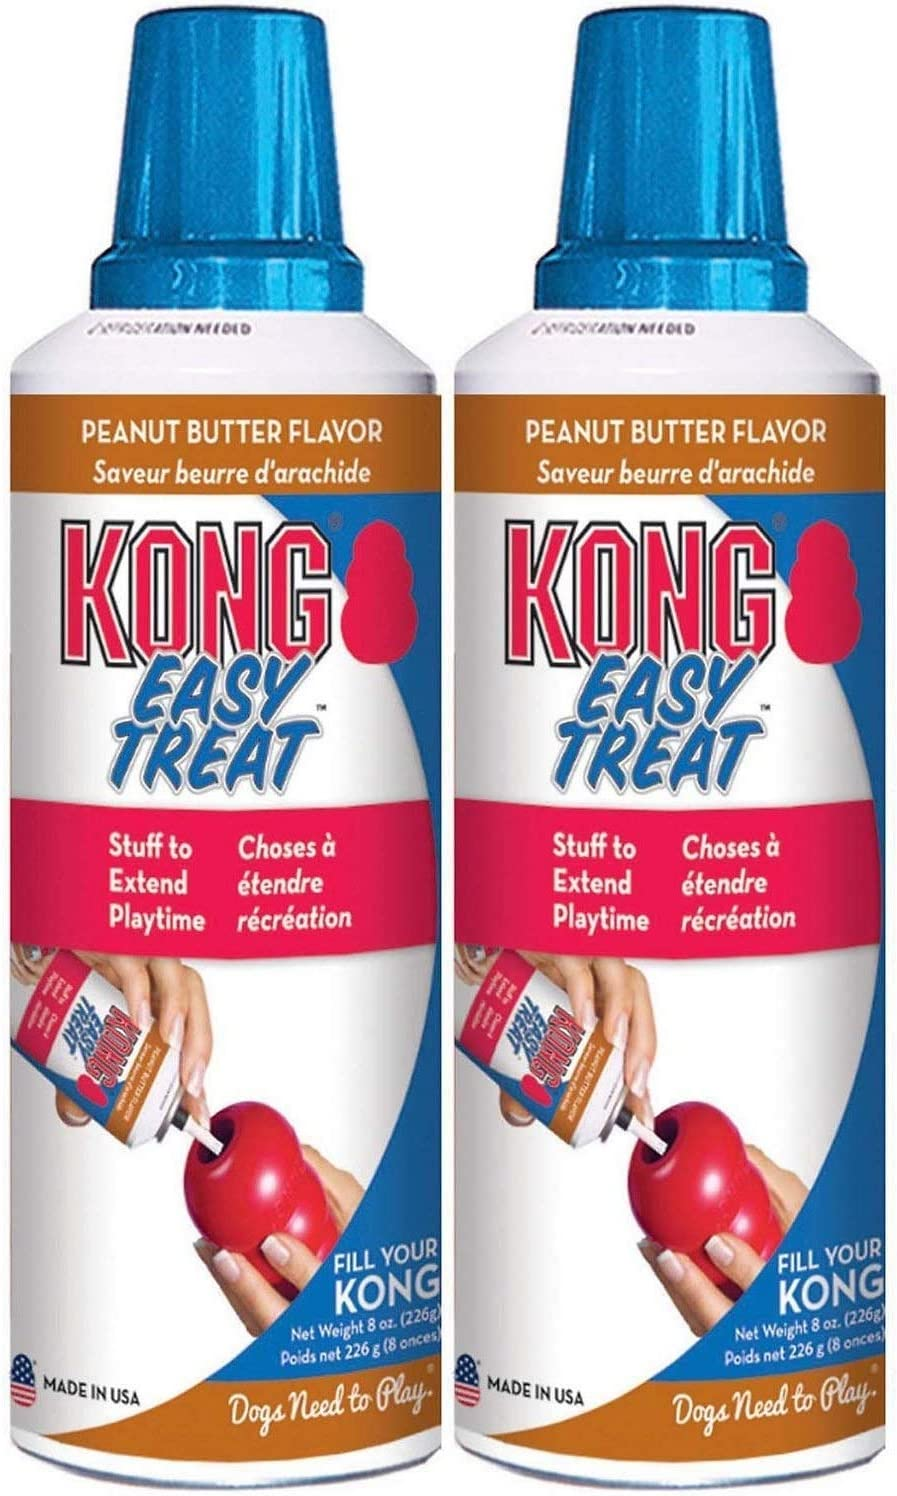 KONGS Peanut Butter 70% OFF Outlet Max 42% OFF 6 of Pack